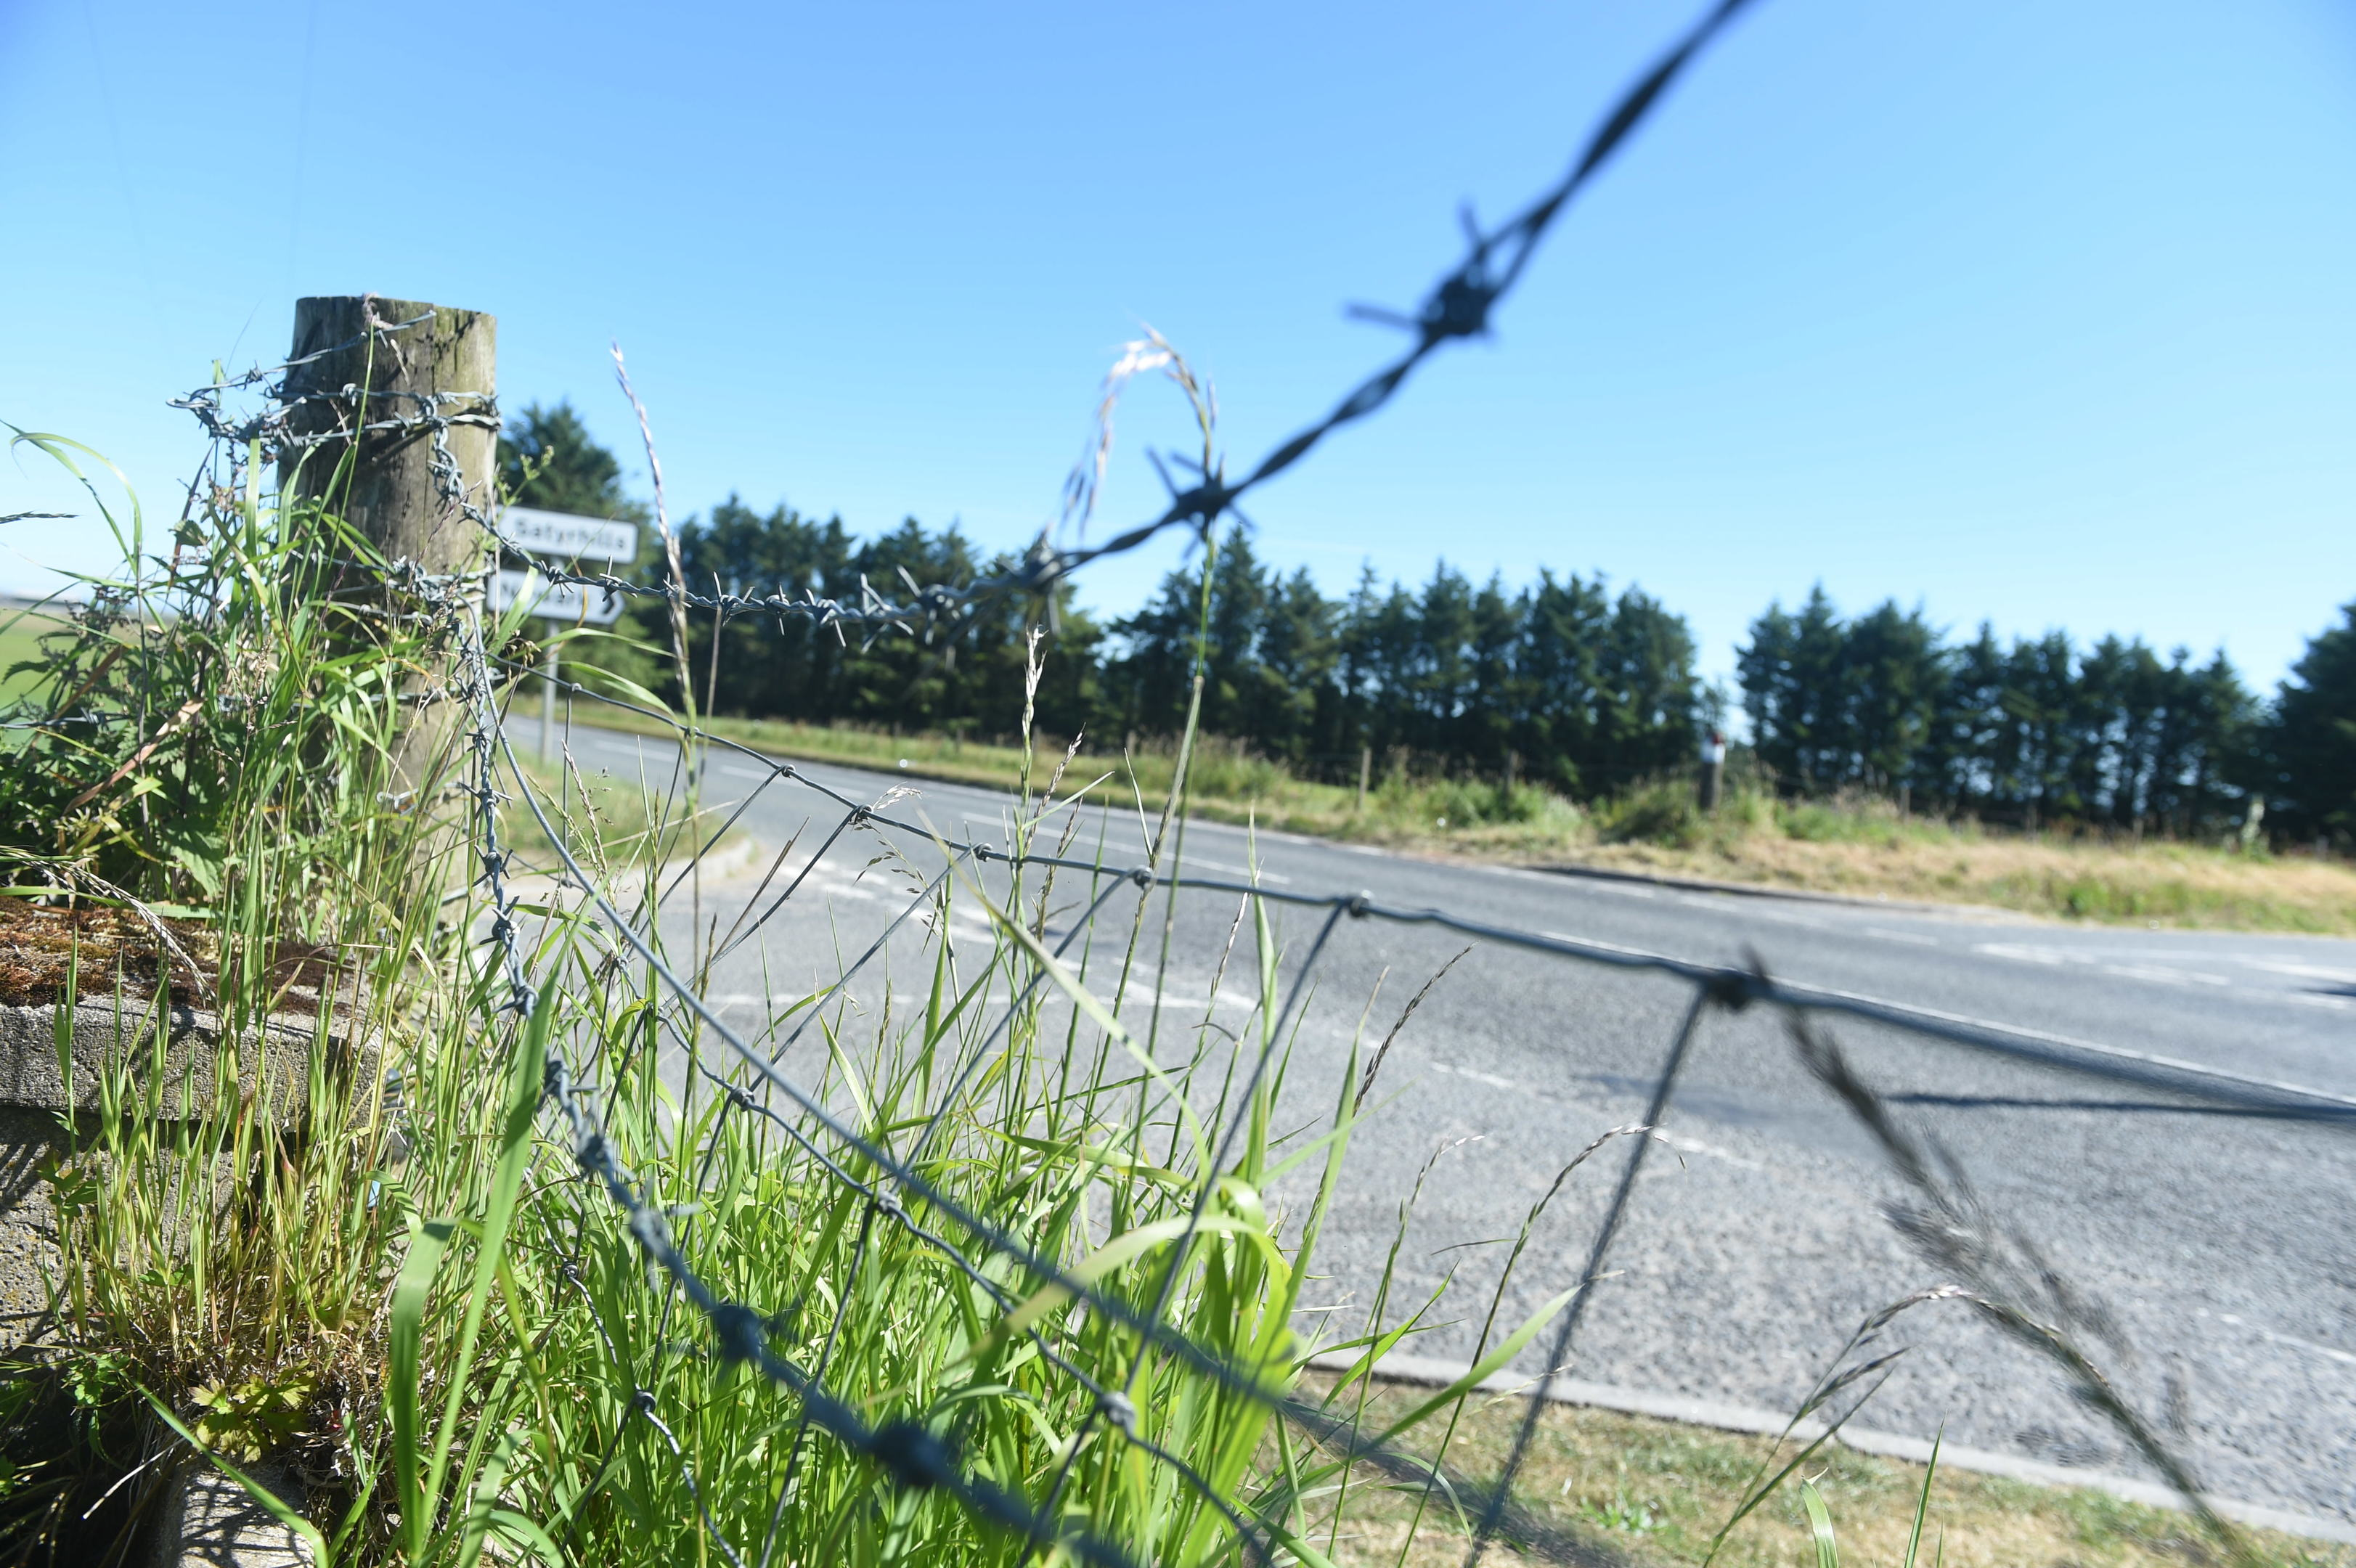 The woman was thrown from her vehicle during the incident and became trapped in barbed wire